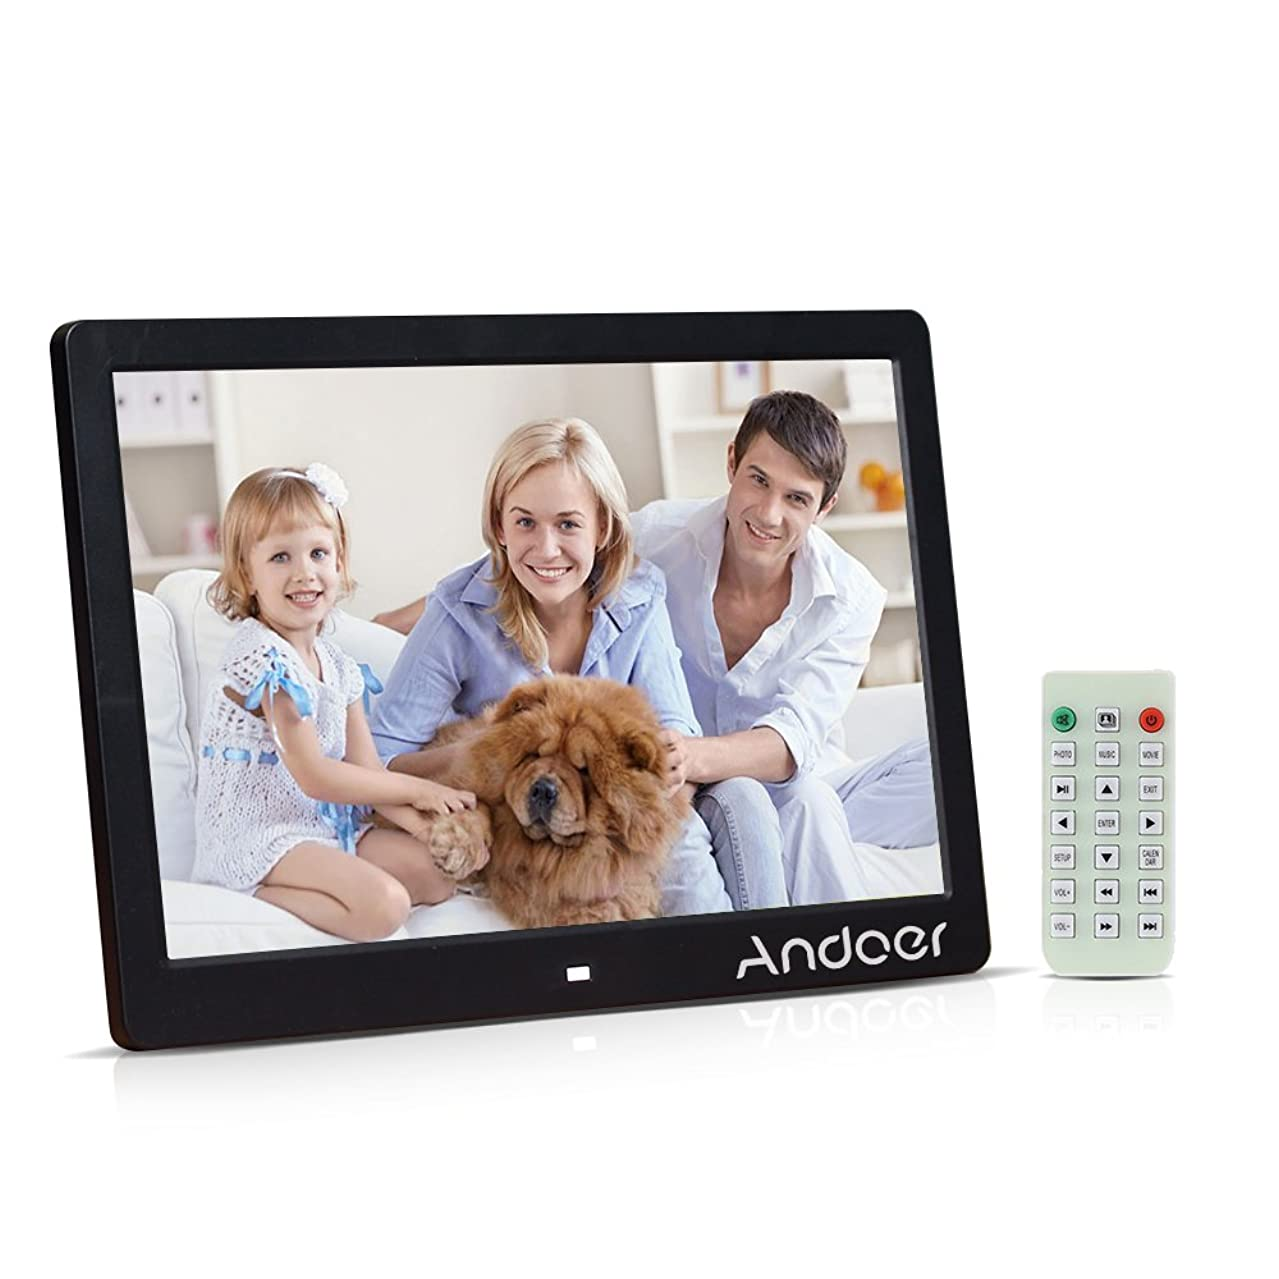 Andoer 13Inch Digital Photo Frame, Digital Picture Frame 1080P LED MP3 MP4 Picture Player Electronic Clock/Alarm Clock/Calendar with Remote Control